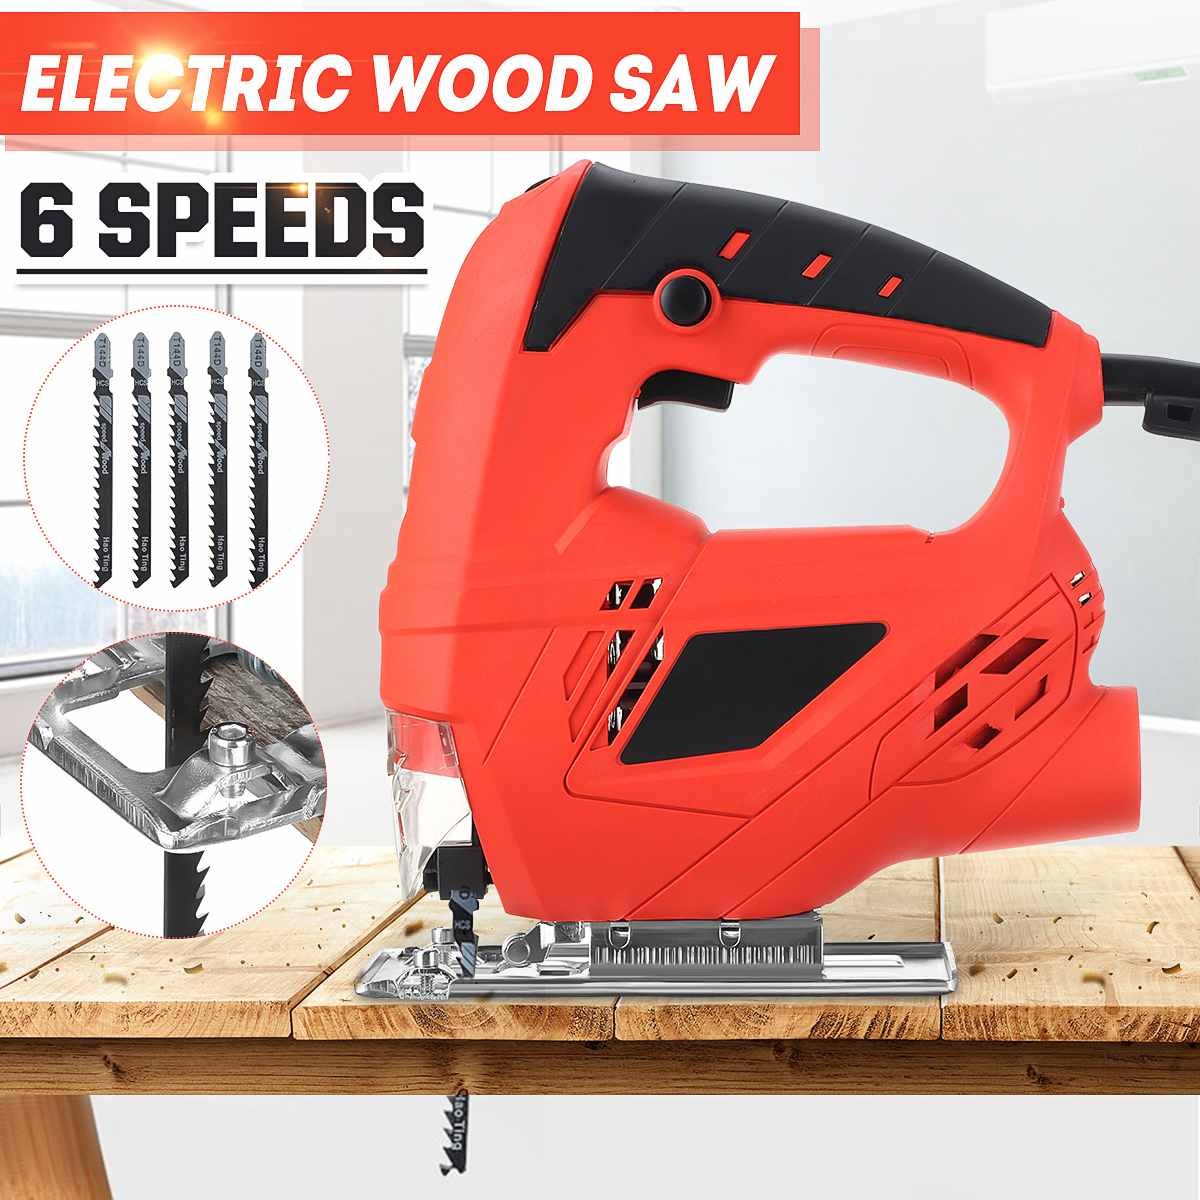 Jig Saw 6 Variable Speed Electric Saw W/5pcs Blade Multifunctional Jigsaw Electric Saws For Woodworking Power Tool